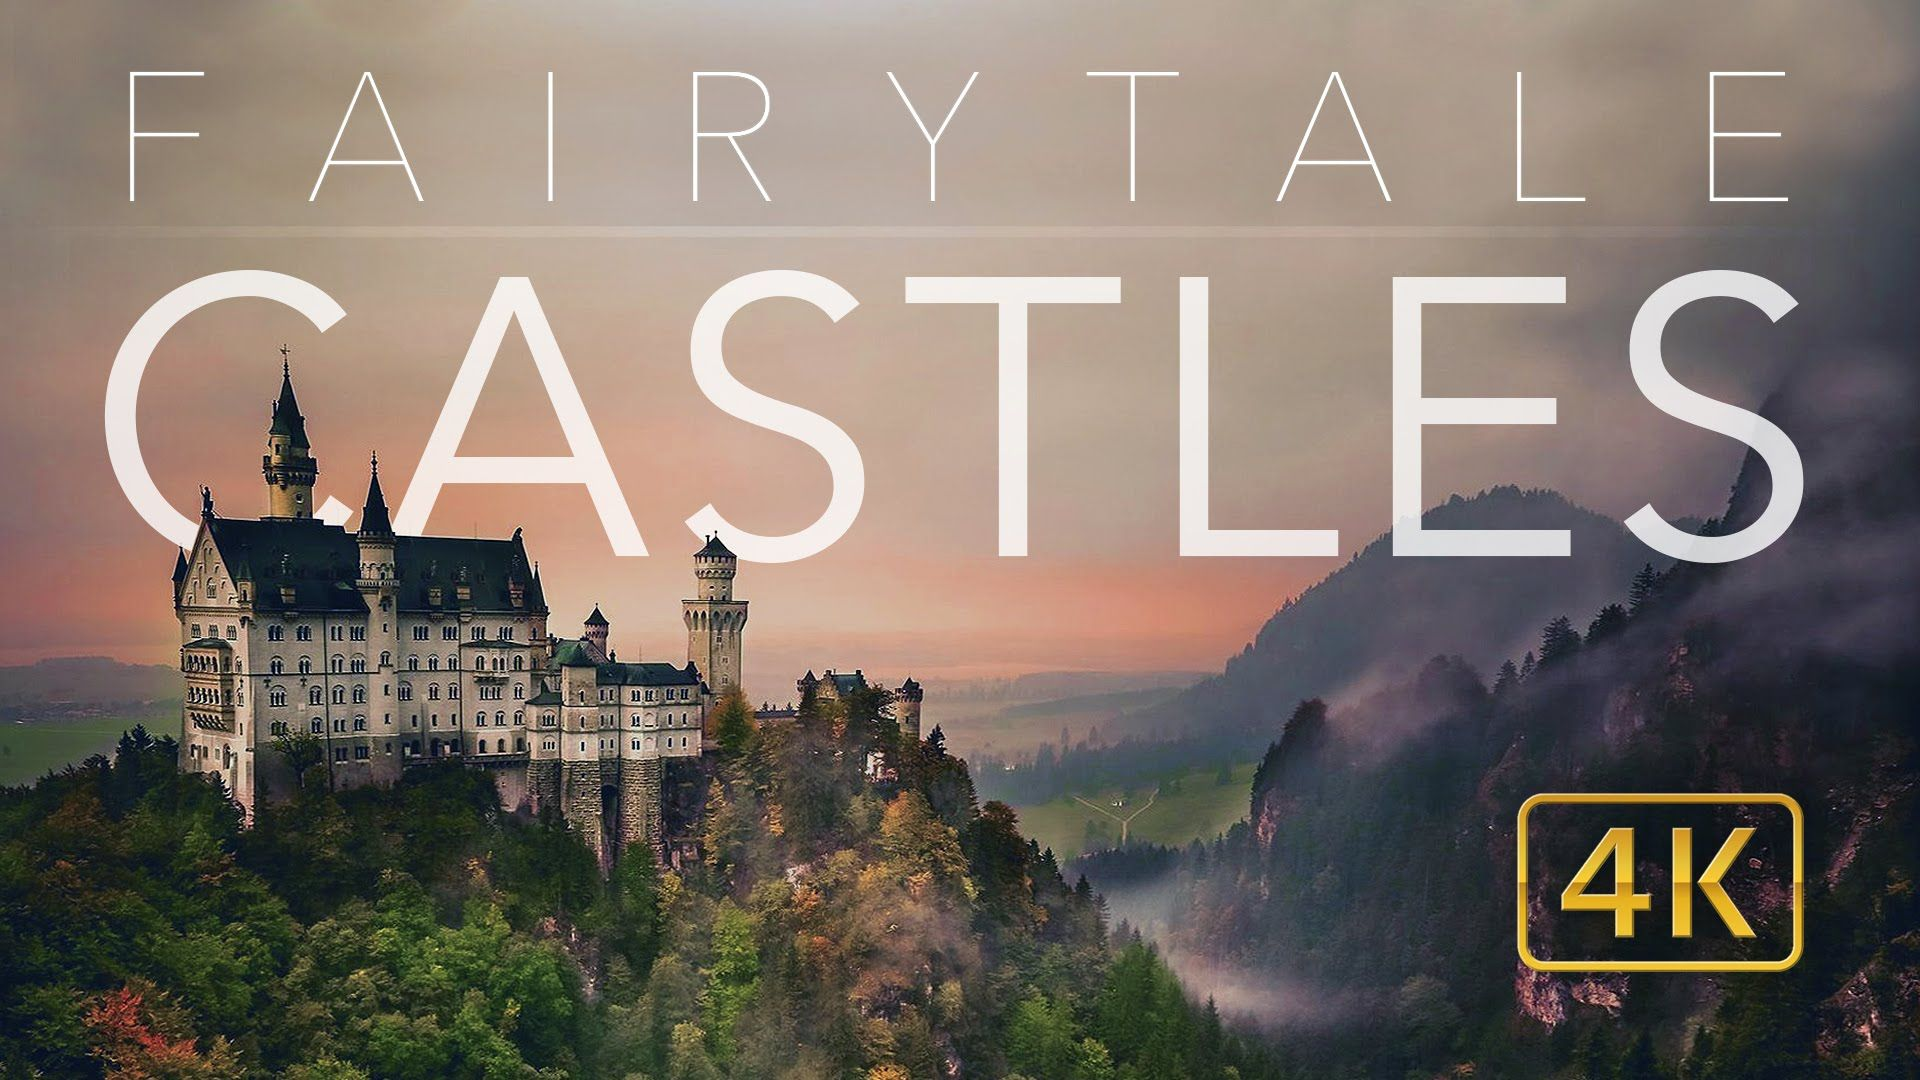 FAIRYTALE CASTLES 4K  // COMPILATION OF EUROPE'S BEST CASTLES & PALACES // AERIAL DRONE EARTH PORN - YouTube